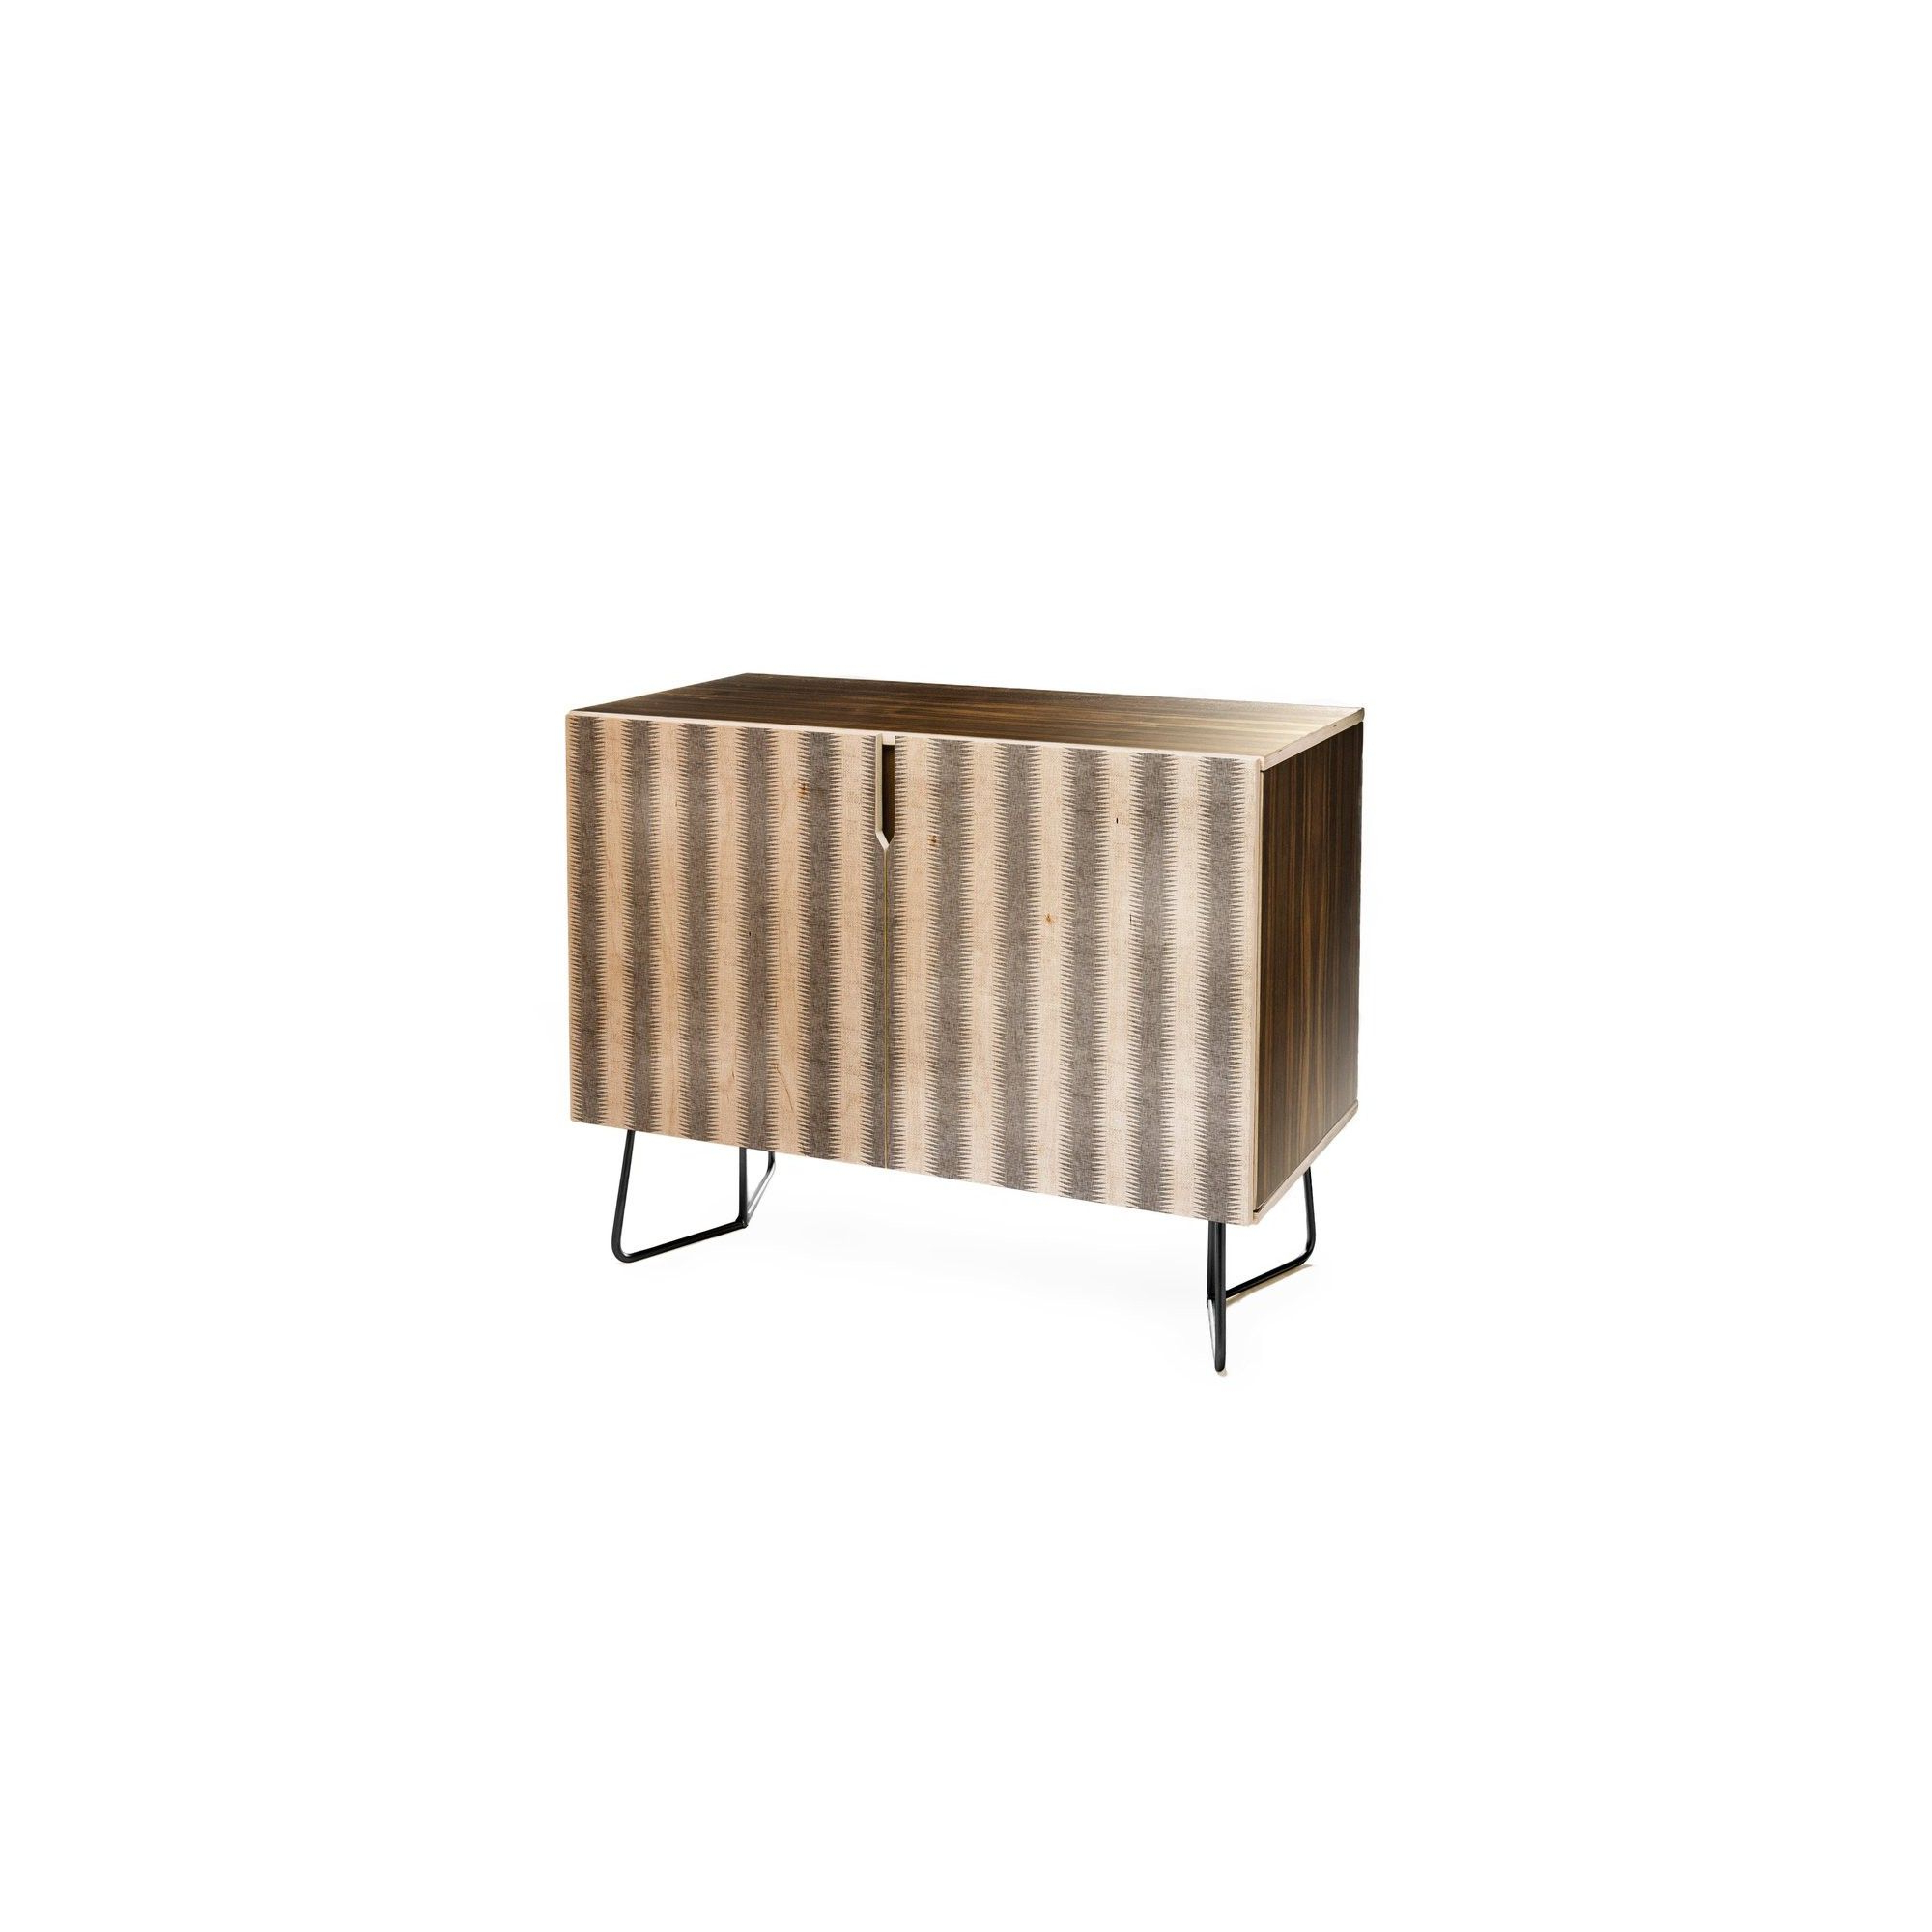 Holli Zollinger French Seaside Stripe Credenza Black Legs Pertaining To Beach Stripes Credenzas (View 8 of 20)